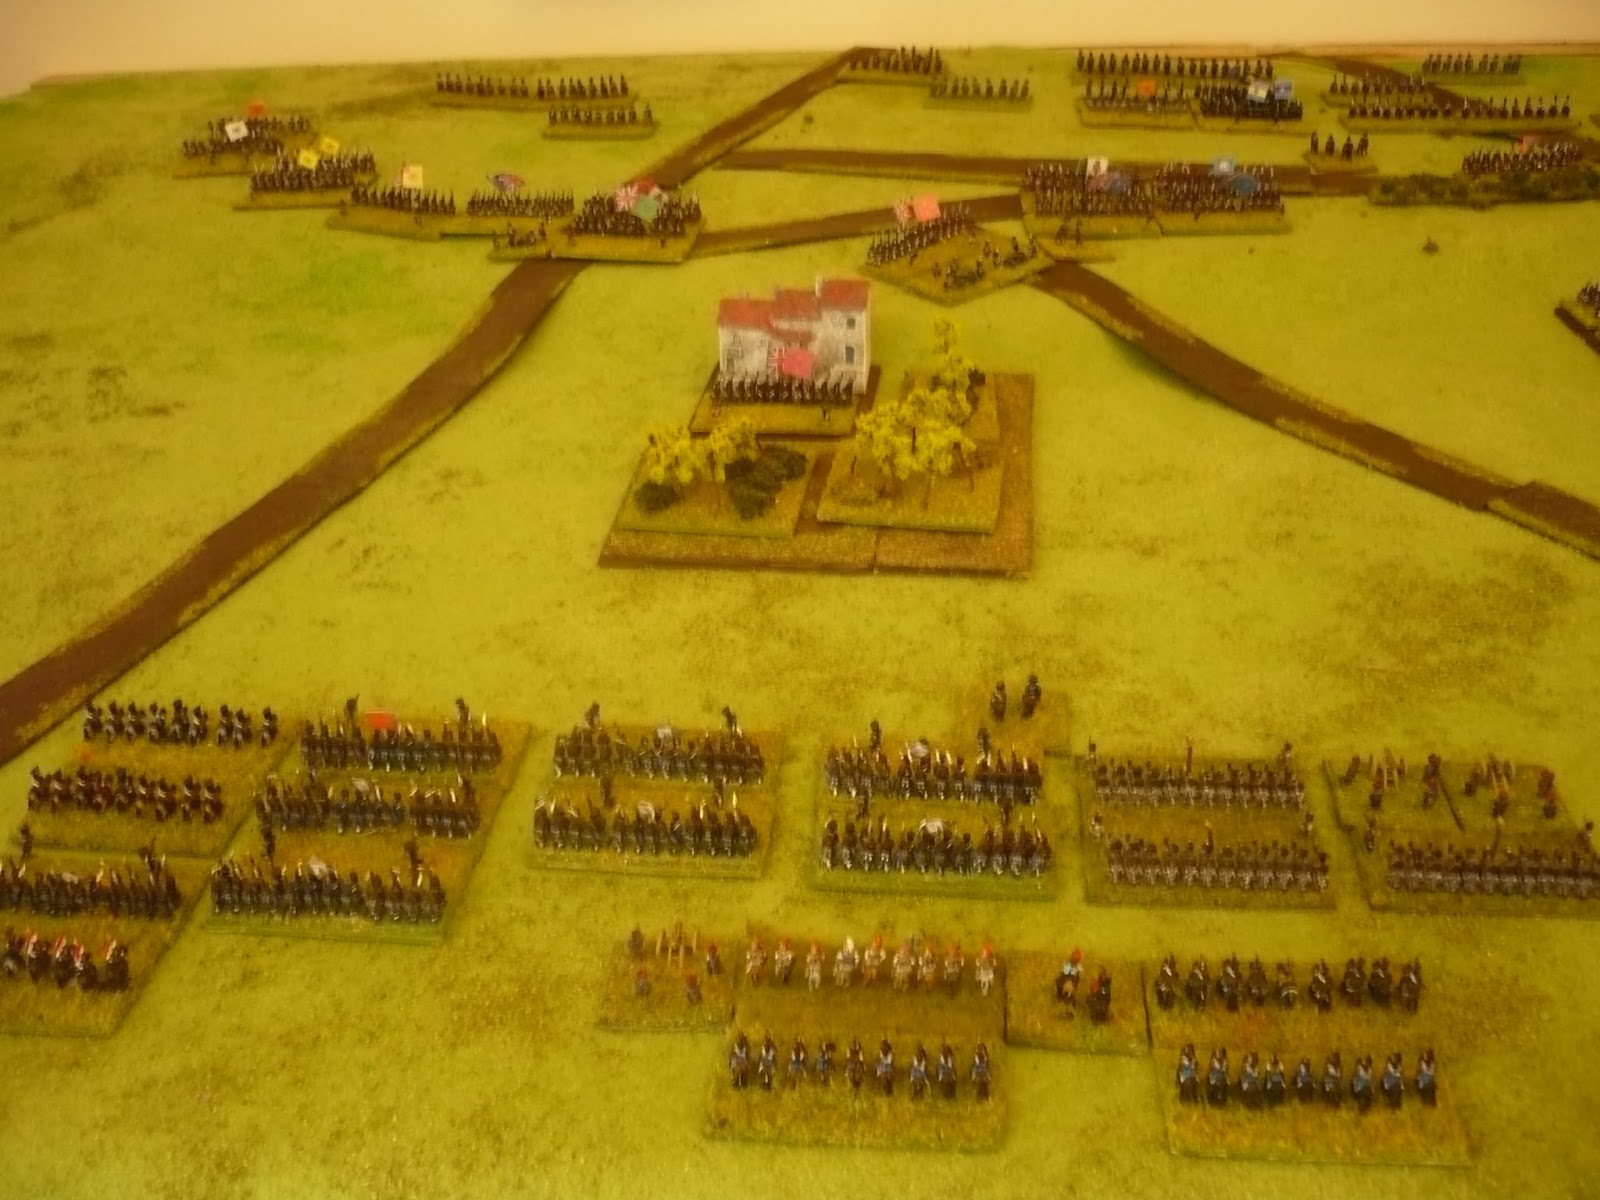 Heretical gaming polemos waterloo a marechal d 39 empire for Domon waterloo